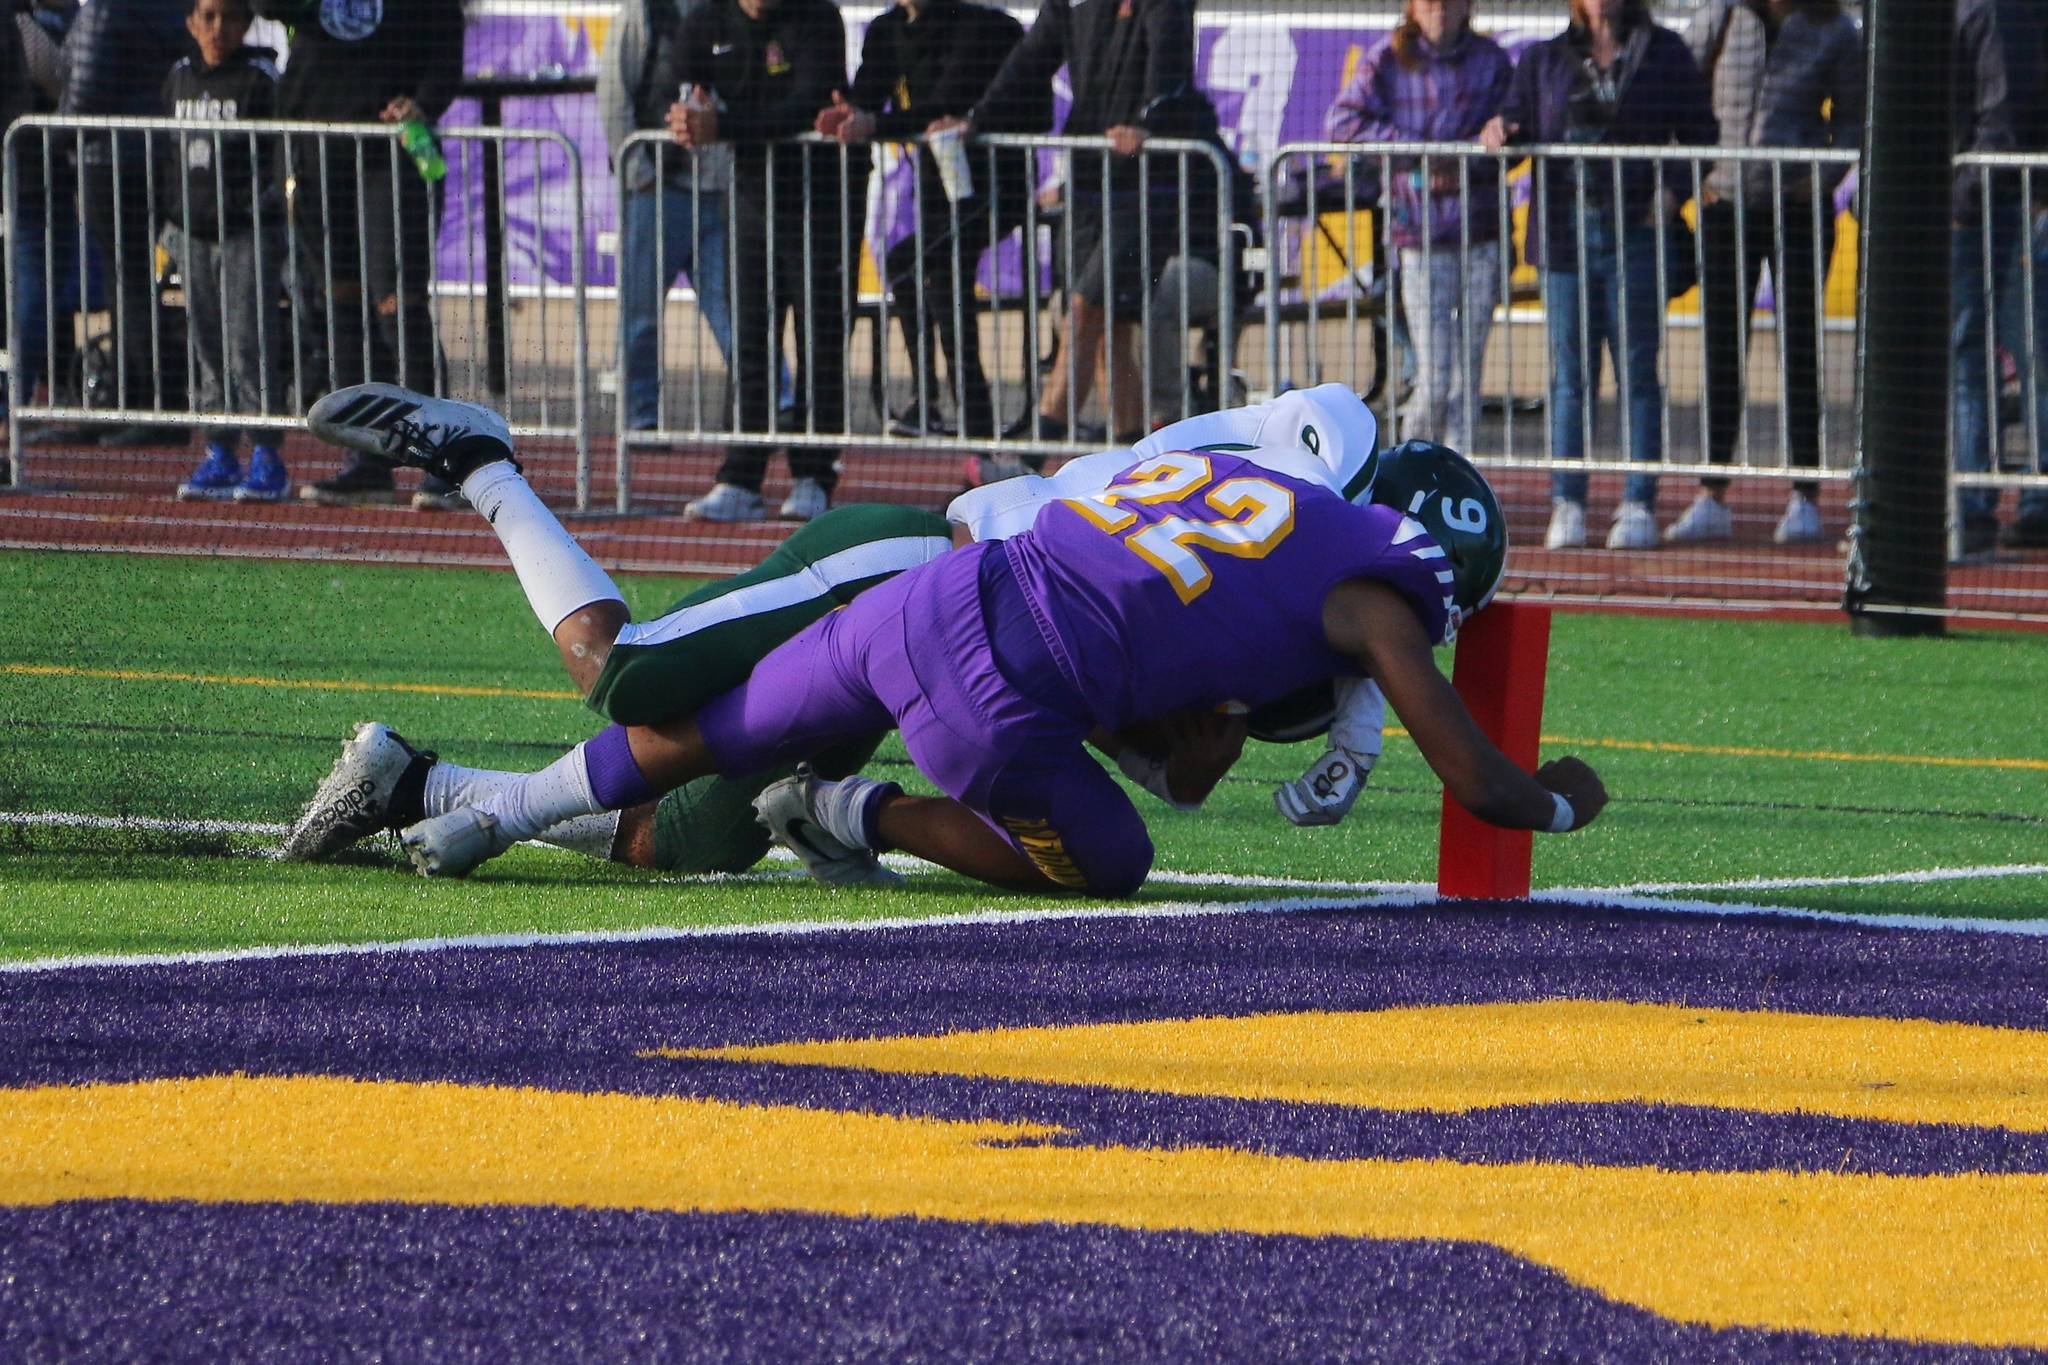 Archbishop Riordan running back Lavaka Kefu scores his third touchdown in the fourth quarter of the Crusaders' 44-7 win over Sacred Heart Cathedral at Mayer Family Field in San Francisco on Nov. 9, 2019. (Ryan Gorcey / S.F. Examiner)